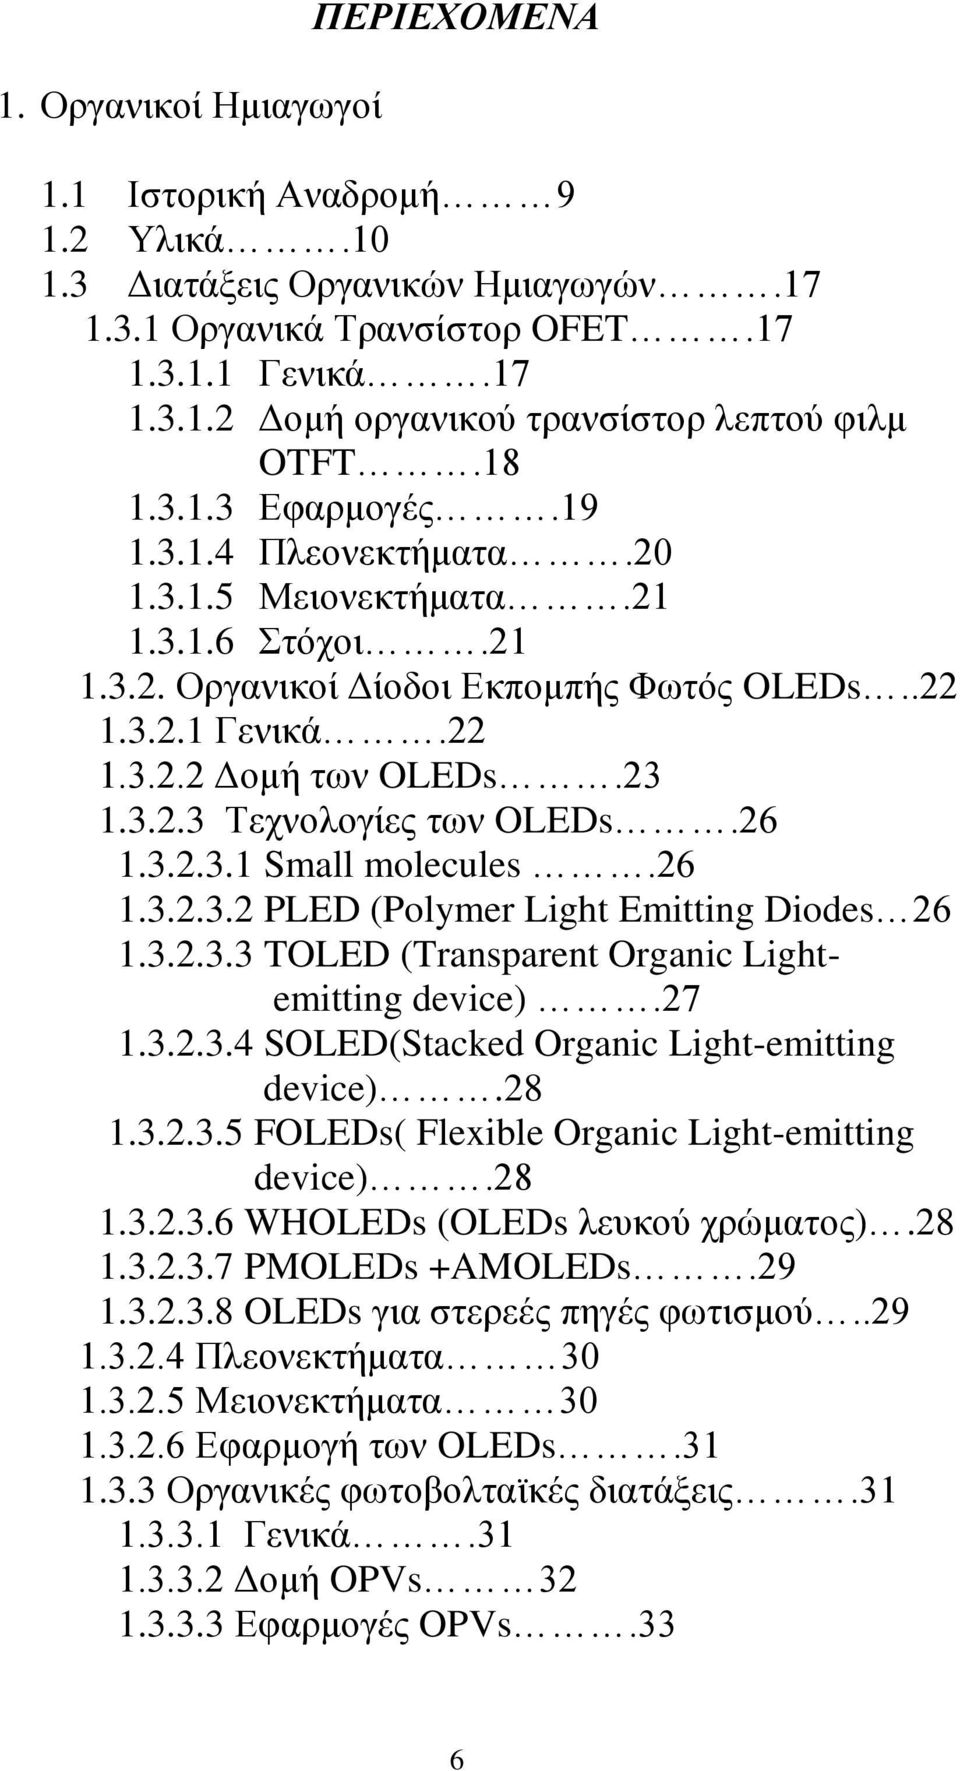 26 1.3.2.3.1 Small molecules.26 1.3.2.3.2 PLED (Polymer Light Emitting Diodes 26 1.3.2.3.3 TOLED (Transparent Organic Lightemitting device).27 1.3.2.3.4 SOLED(Stacked Organic Light-emitting device).